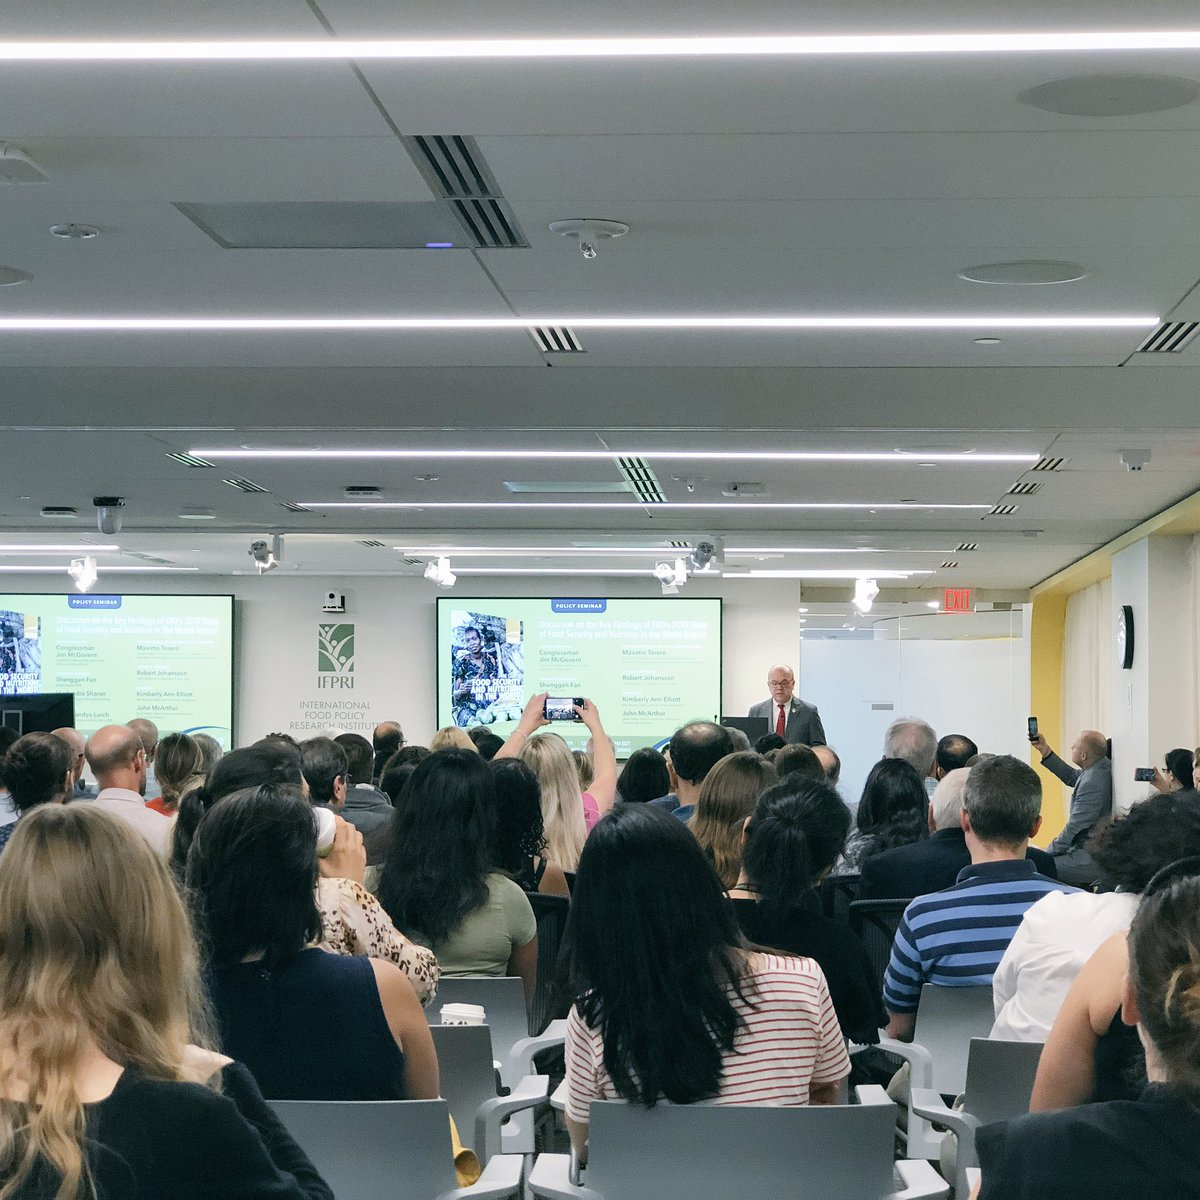 """Full house here at @IFPRI for hunger fighting champion @RepMcGovern talking #SOFI2019:  """"Some news reports have called hunger trends 'stable'. But the only thing stable in people's lives is their suffering.""""  Read here: http://www.fao.org/3/ca5162en/ca5162en.pdf…"""